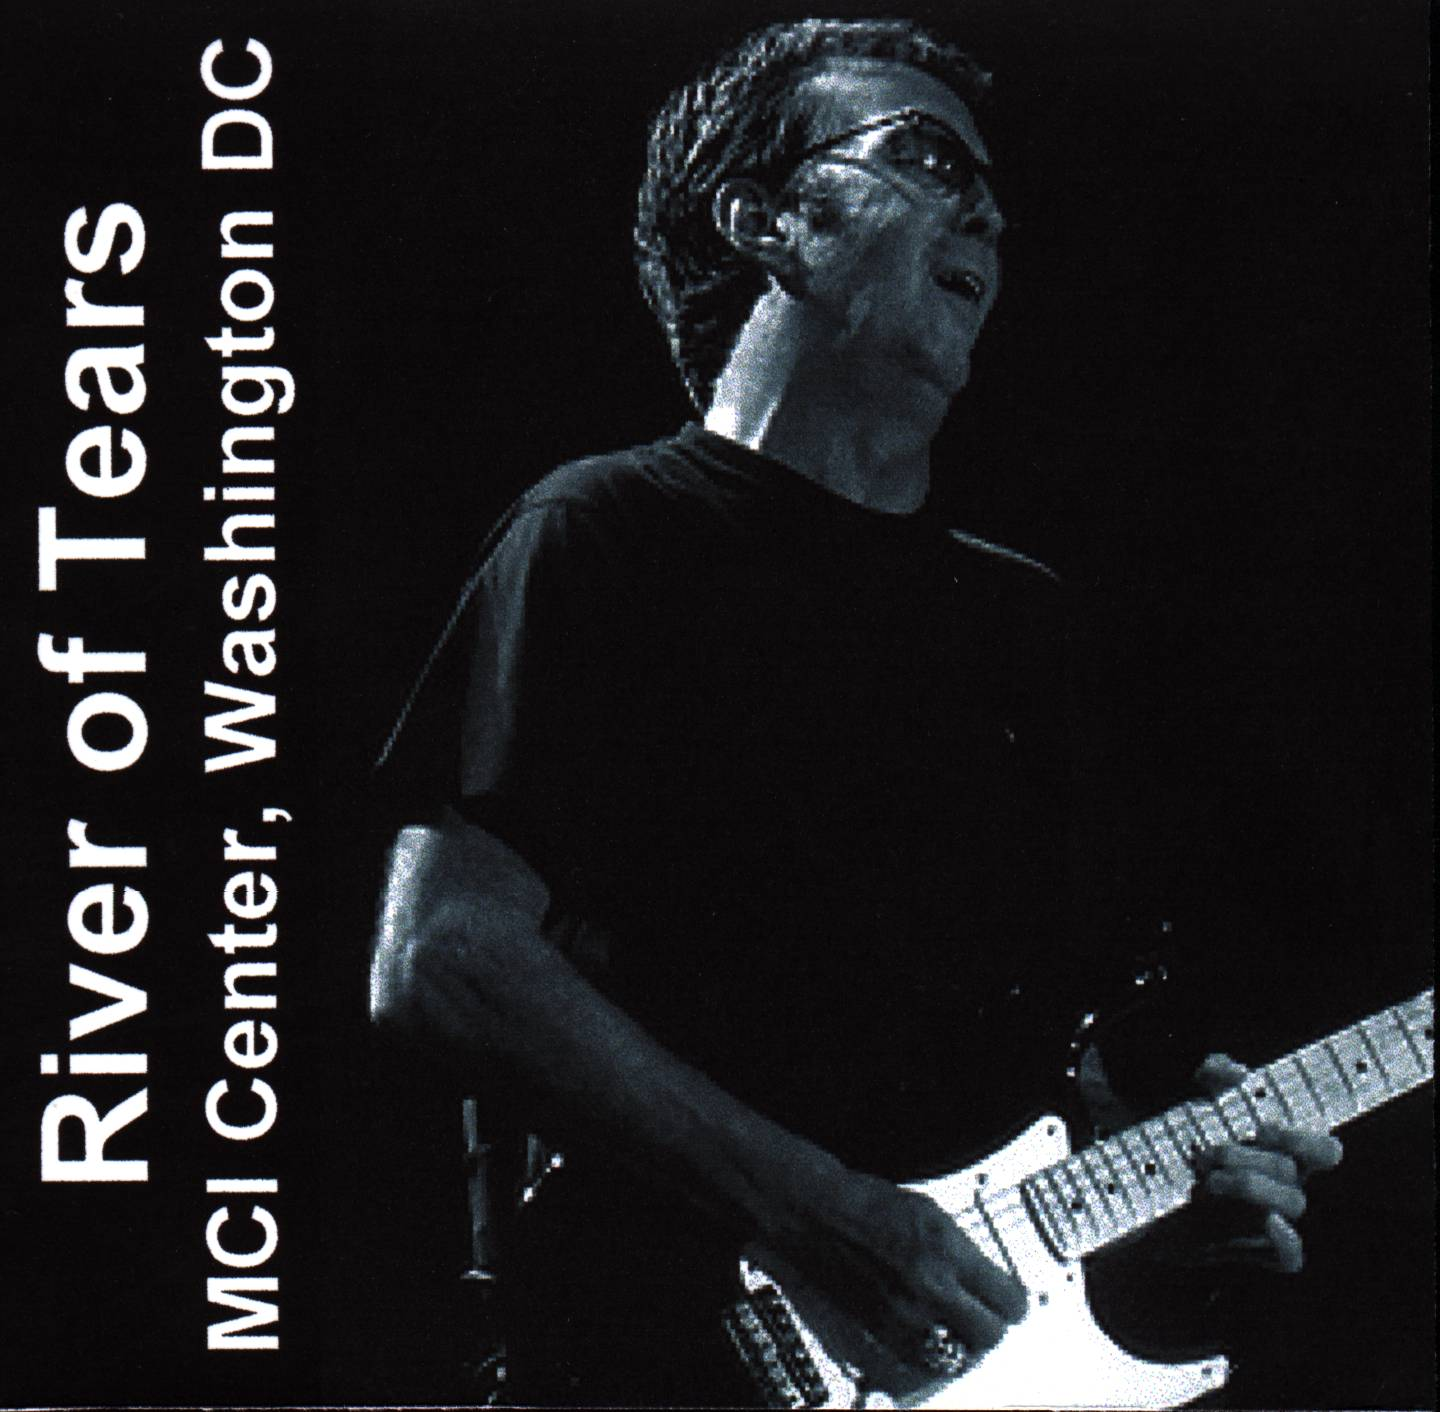 038. ERIC CLAPTON - RIVER OF TEARS